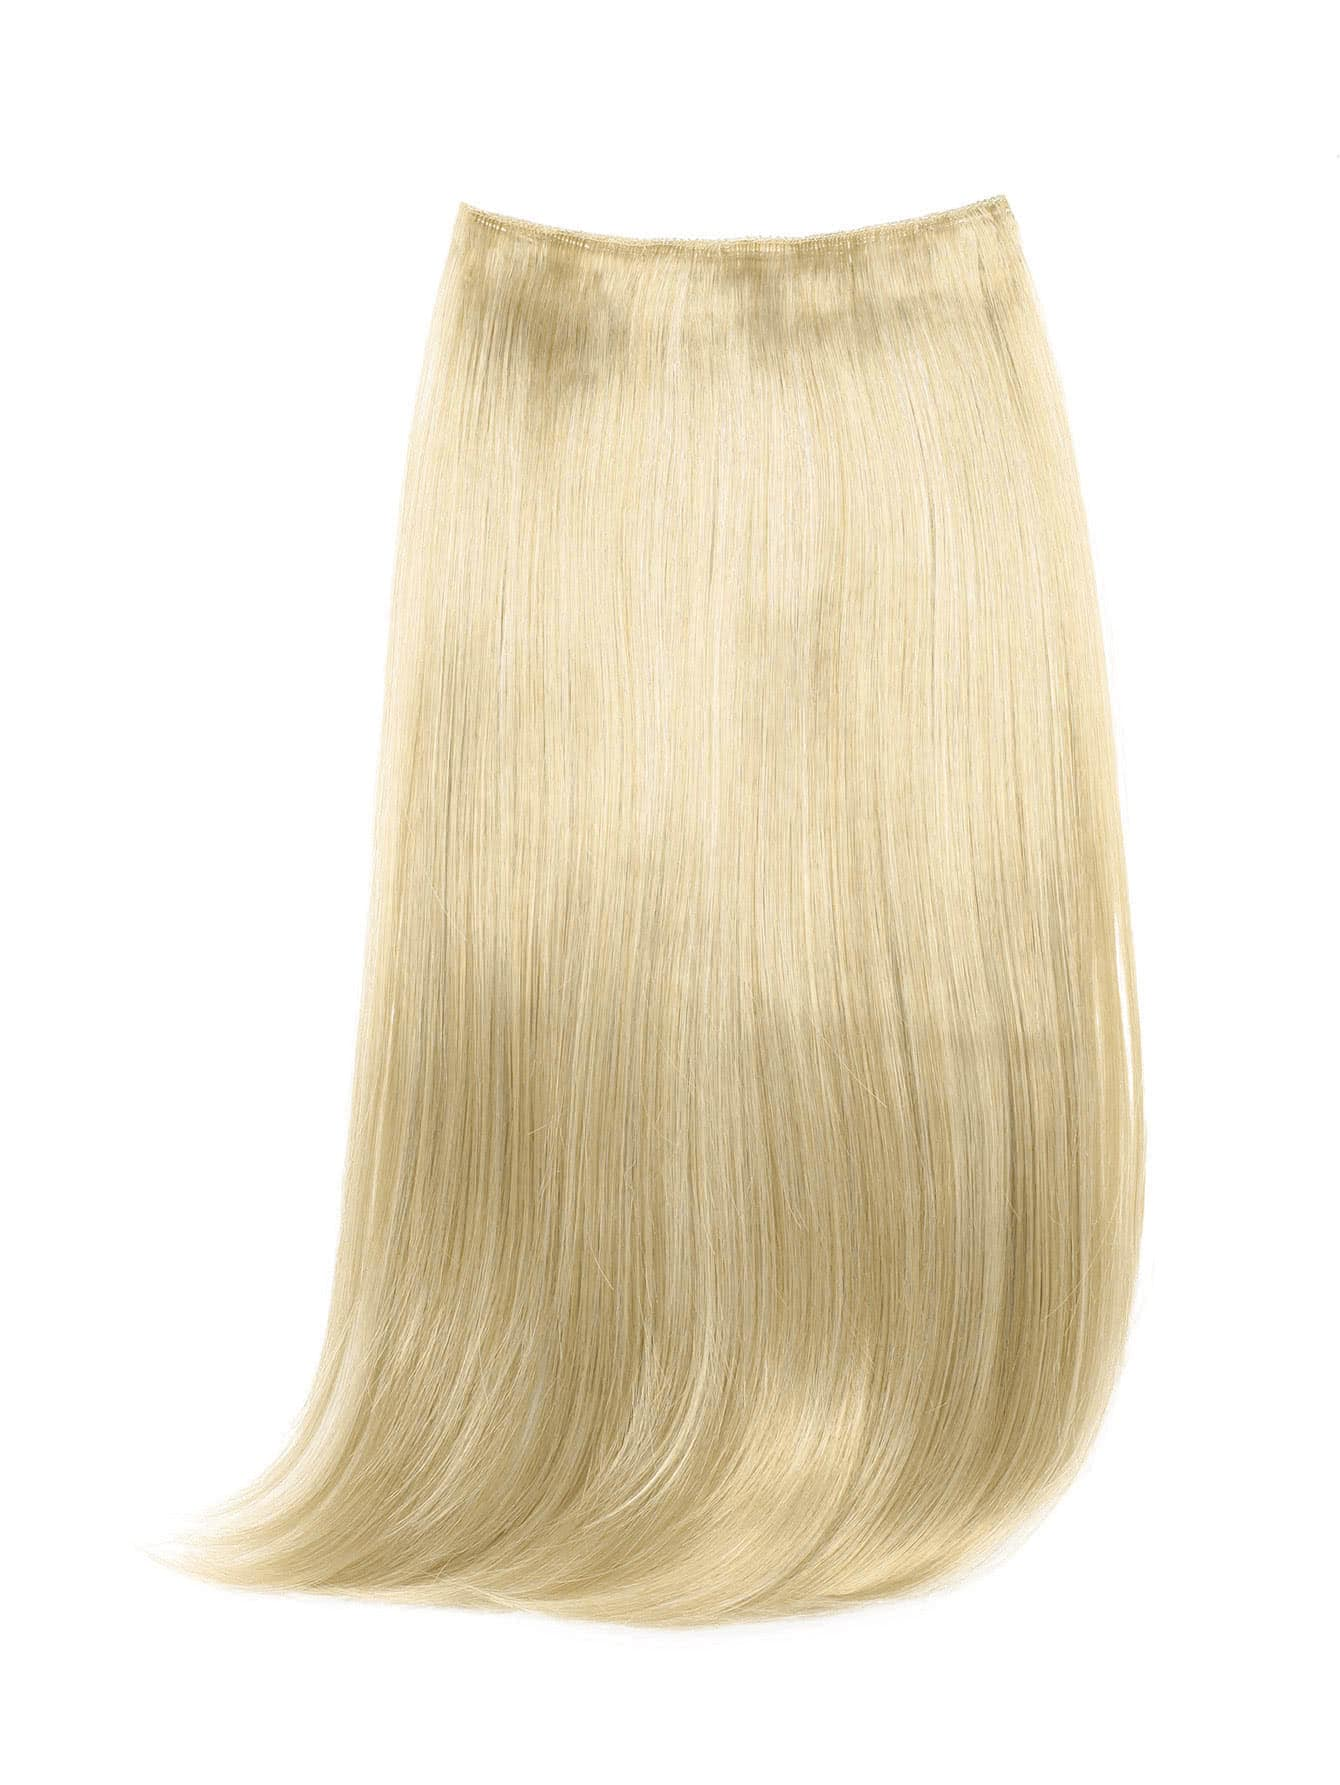 Straight Hair Weft With Clip